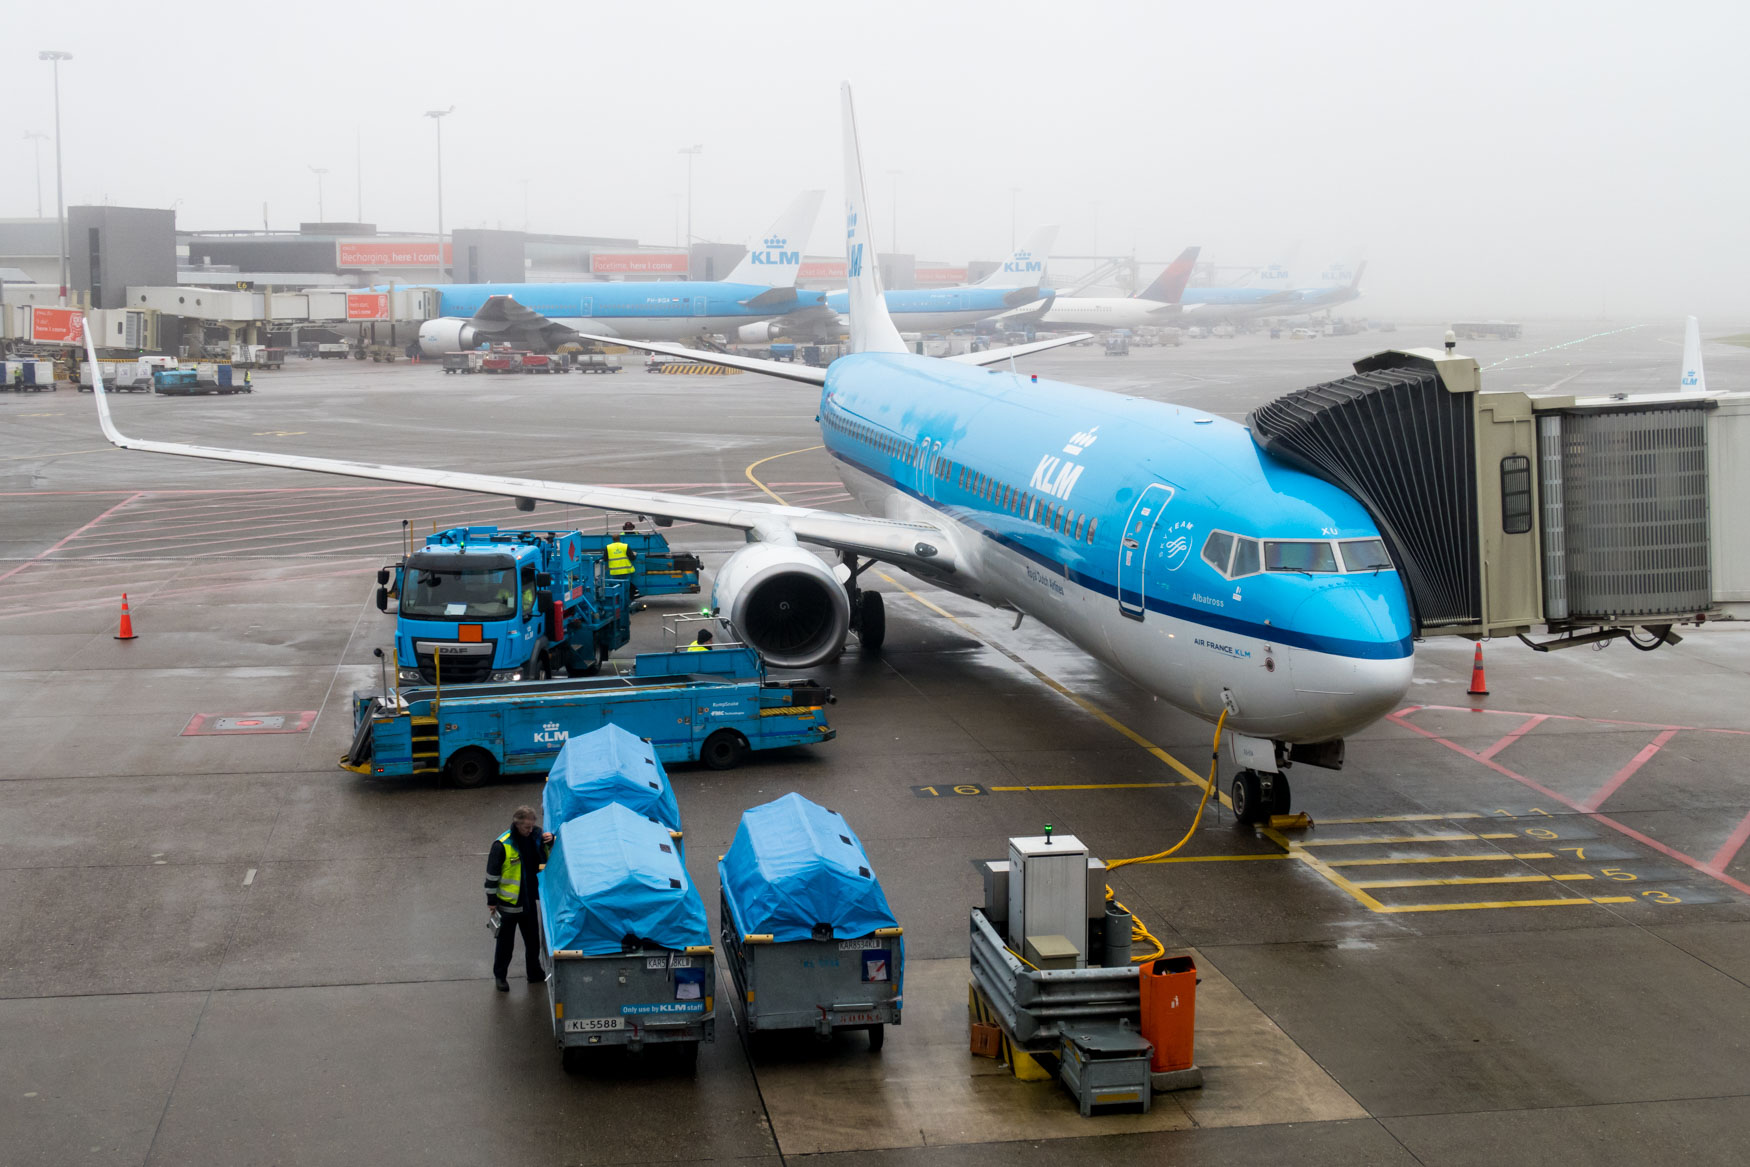 KLM Boeing 737-800 at Amsterdam Schiphol